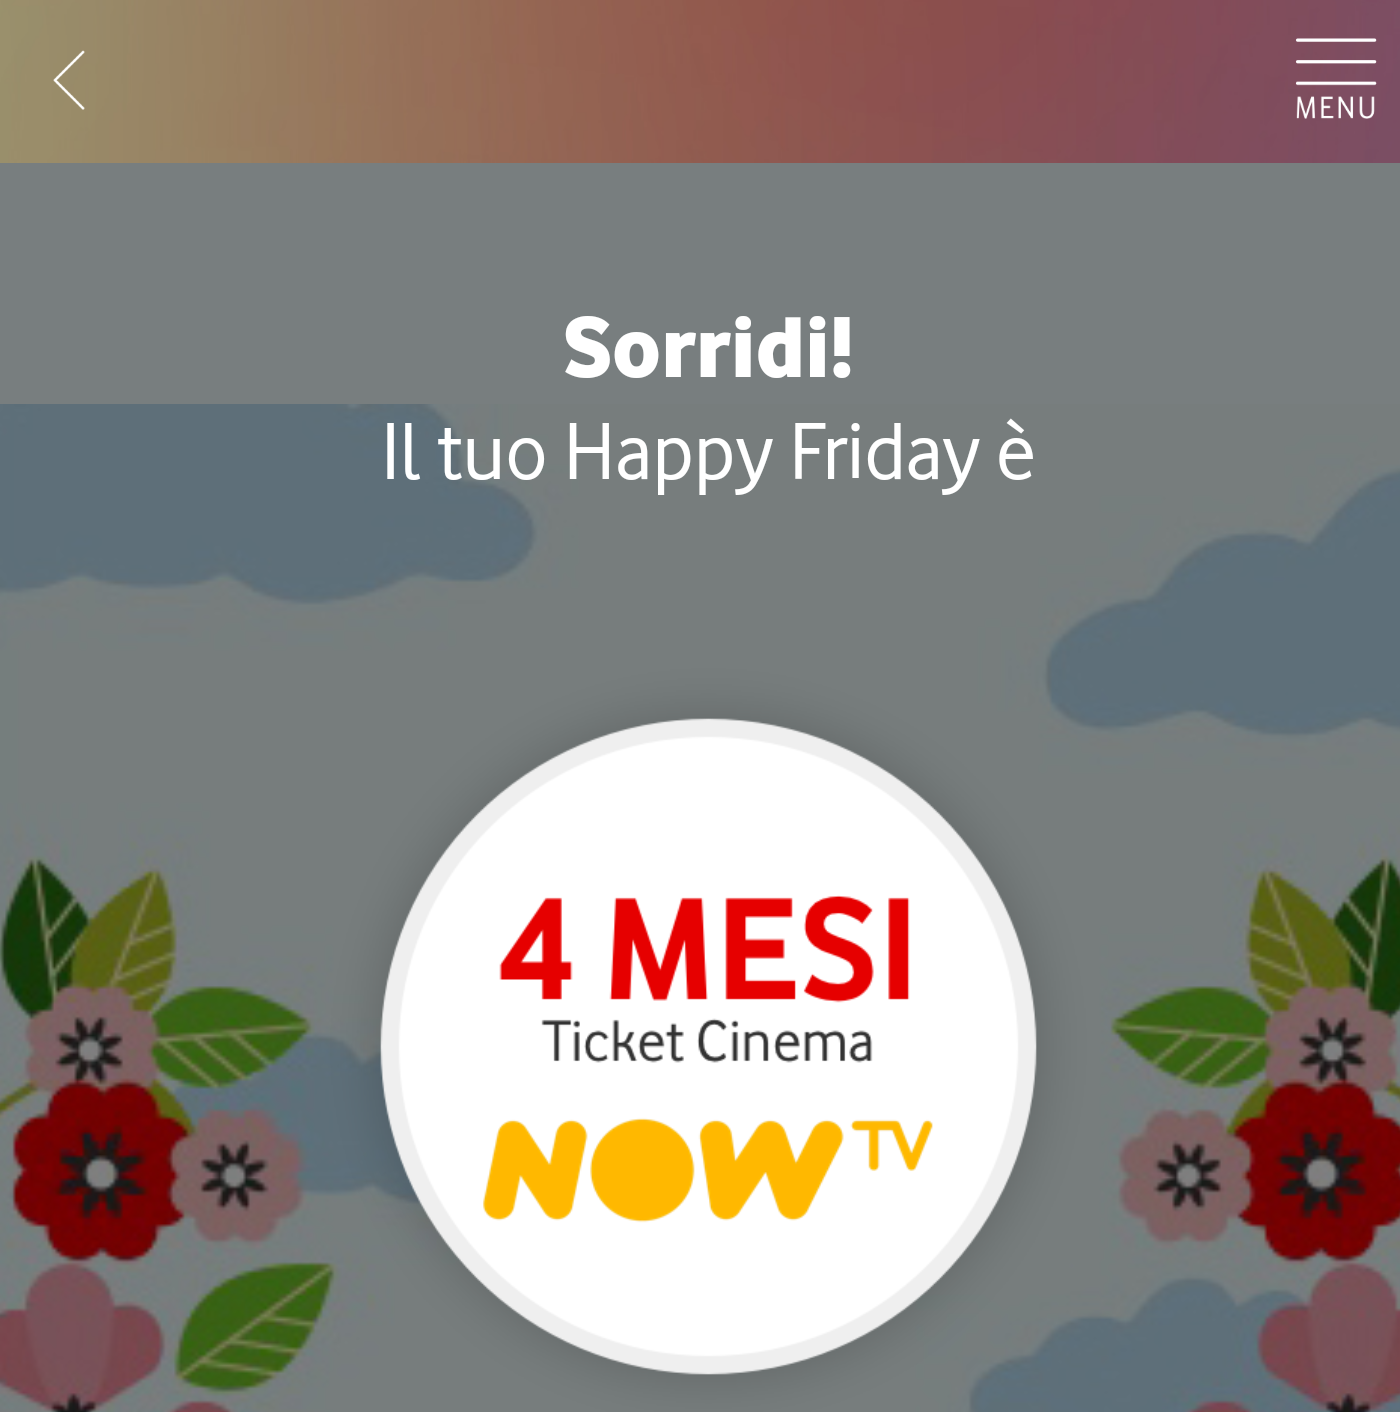 Vodafone Happy, in regalo 4 mesi di Cinema su Now TV